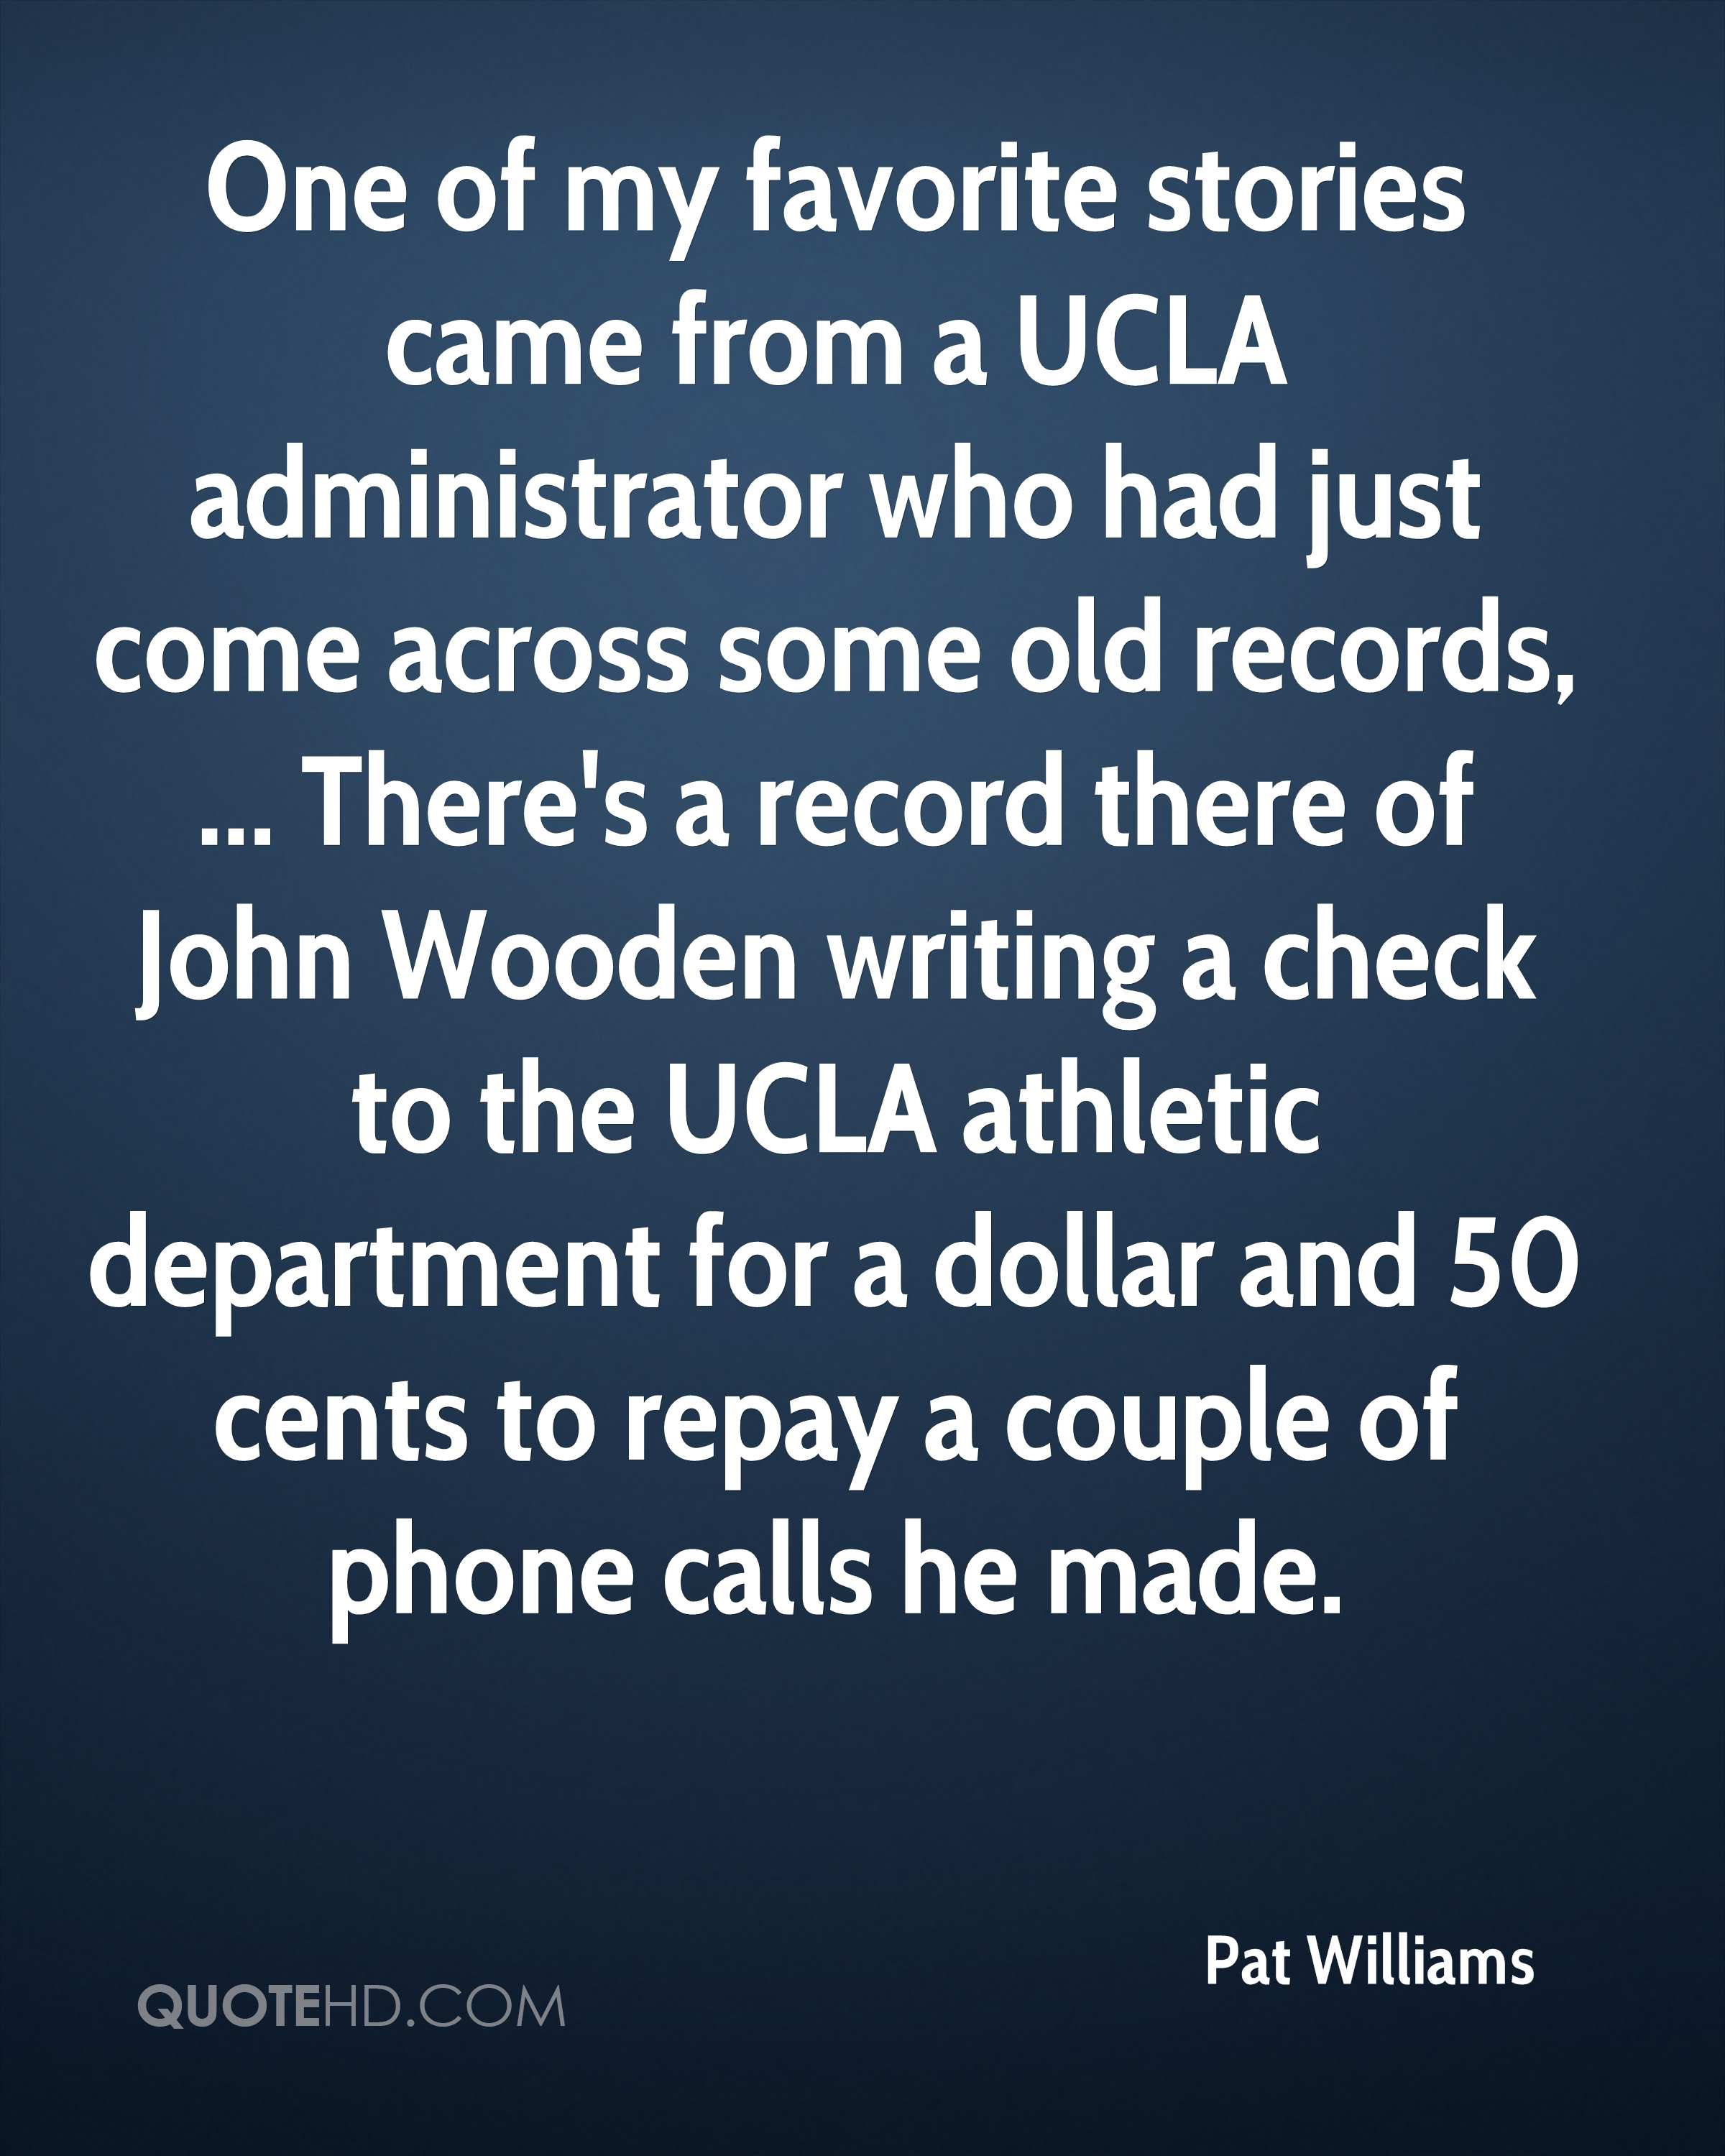 One of my favorite stories came from a UCLA administrator who had just come across some old records, ... There's a record there of John Wooden writing a check to the UCLA athletic department for a dollar and 50 cents to repay a couple of phone calls he made.